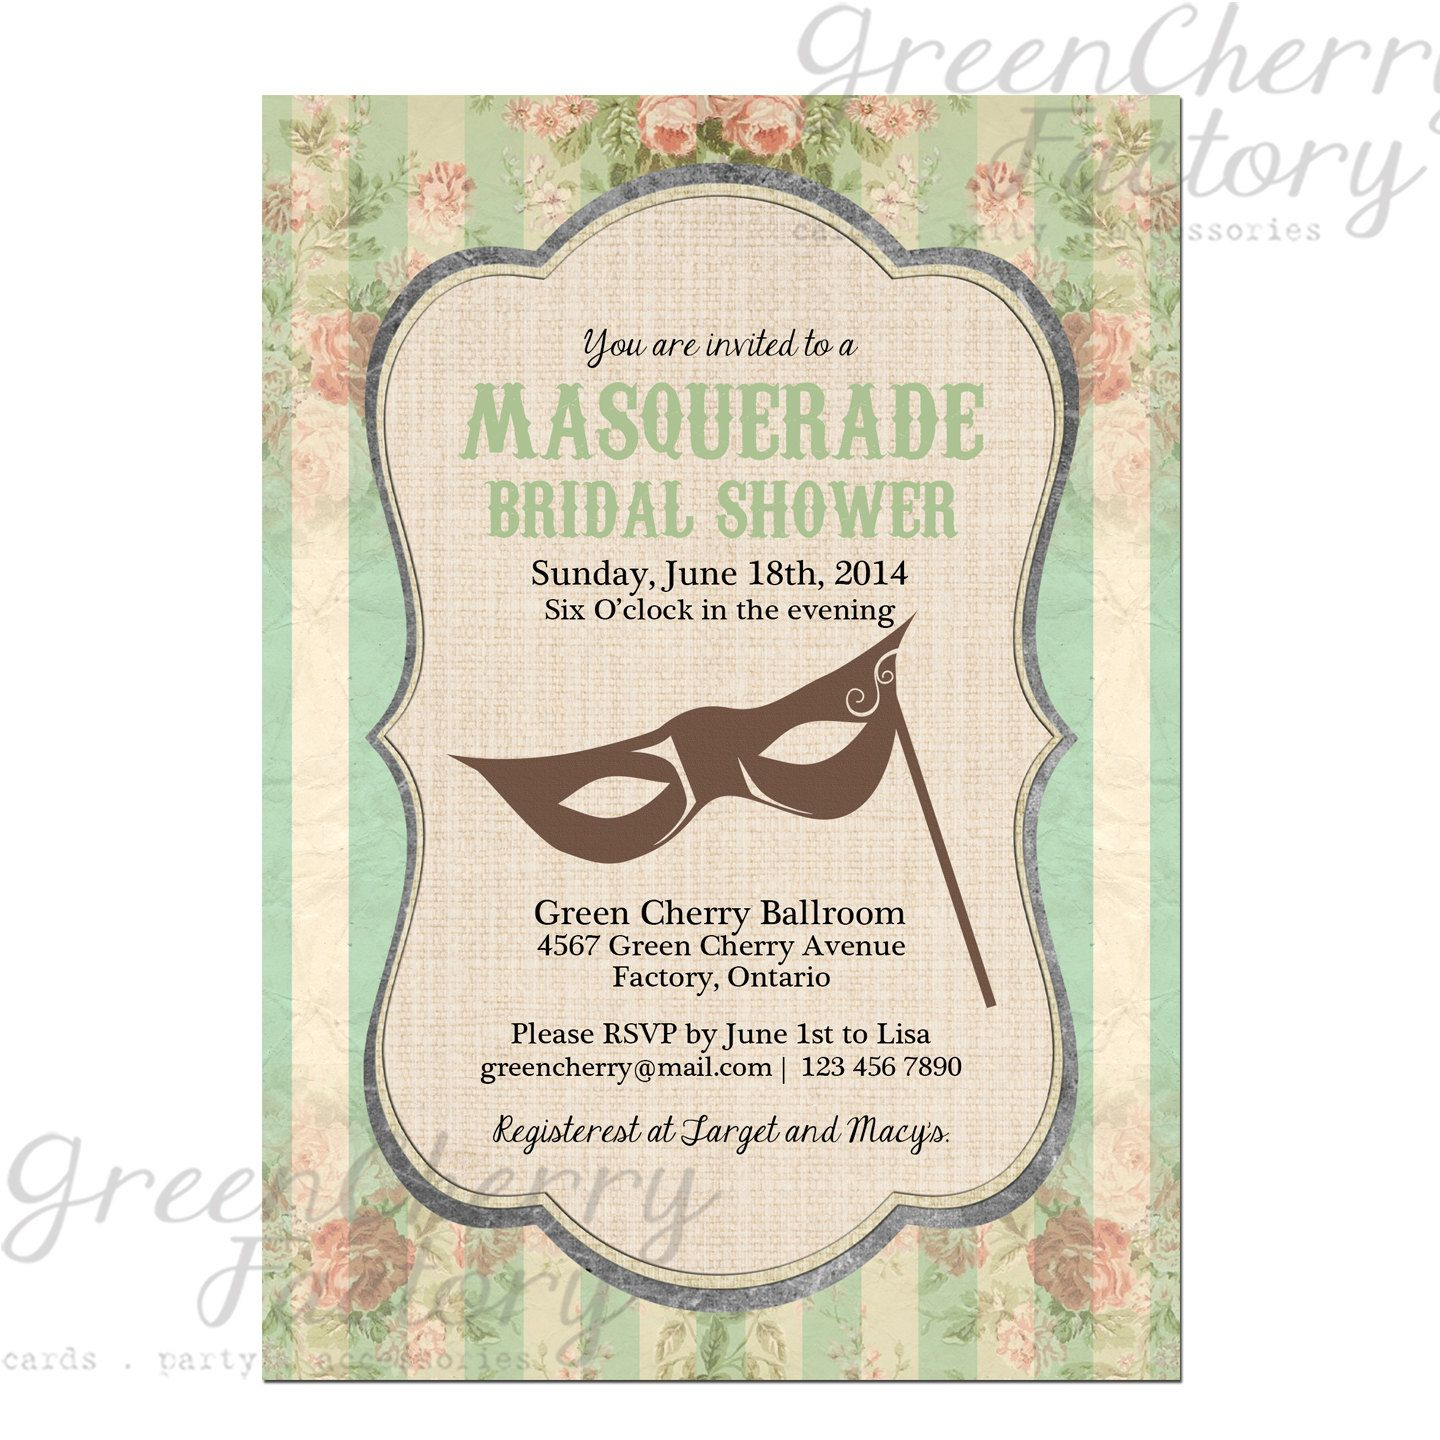 masquerade bridal shower invitation mint by greencherryfactory 1800